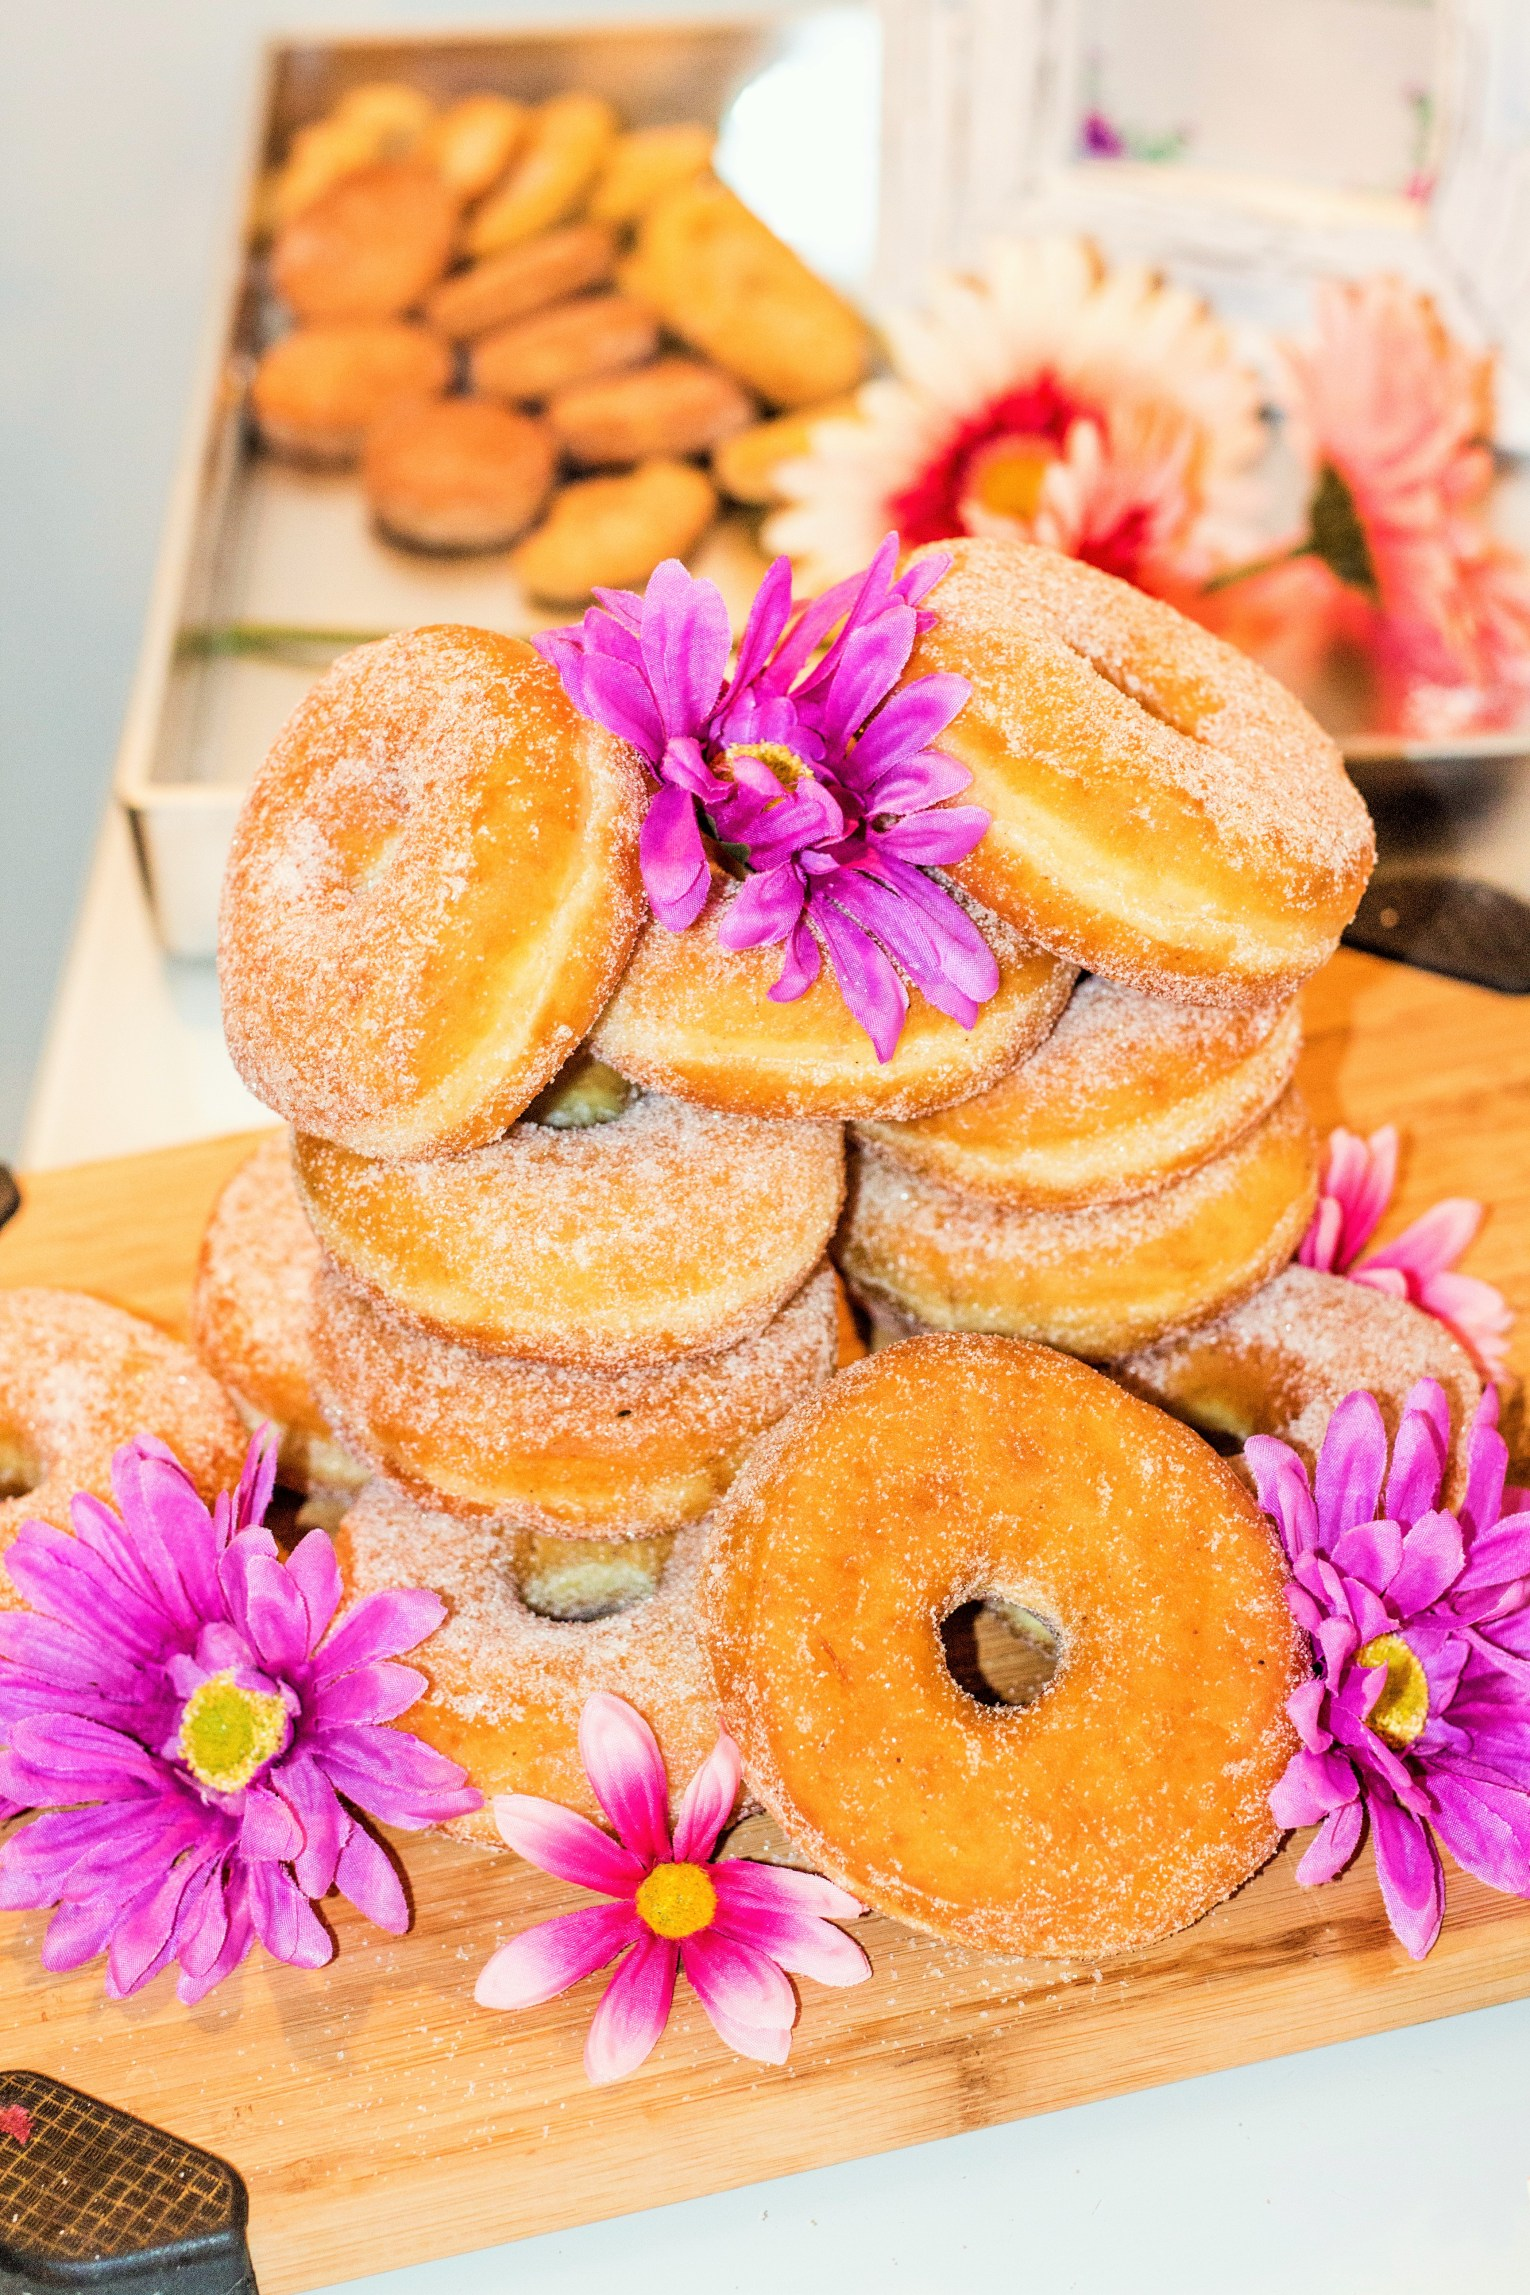 Sugar Donuts and Pink Flowers